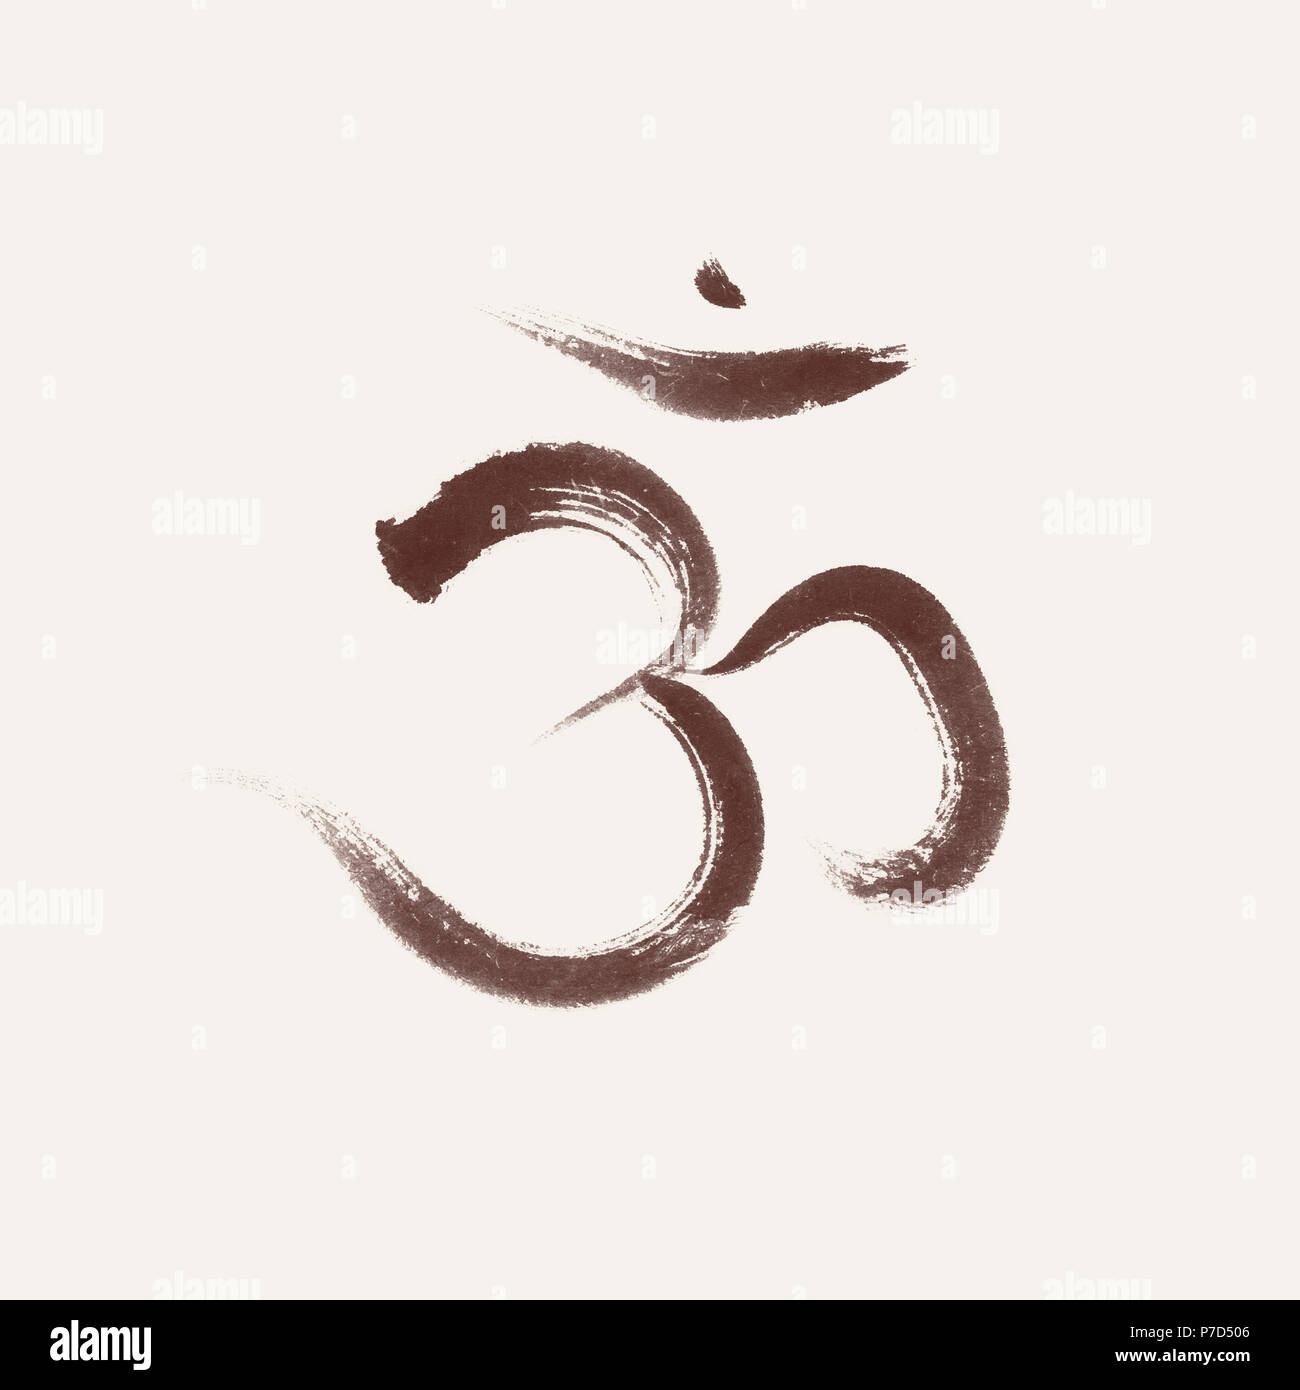 Sanscrit sacred symbol Om or Aum, spiritual icon, associated with the crown chakra in Yoga, Artistic design based on an original - Stock Image